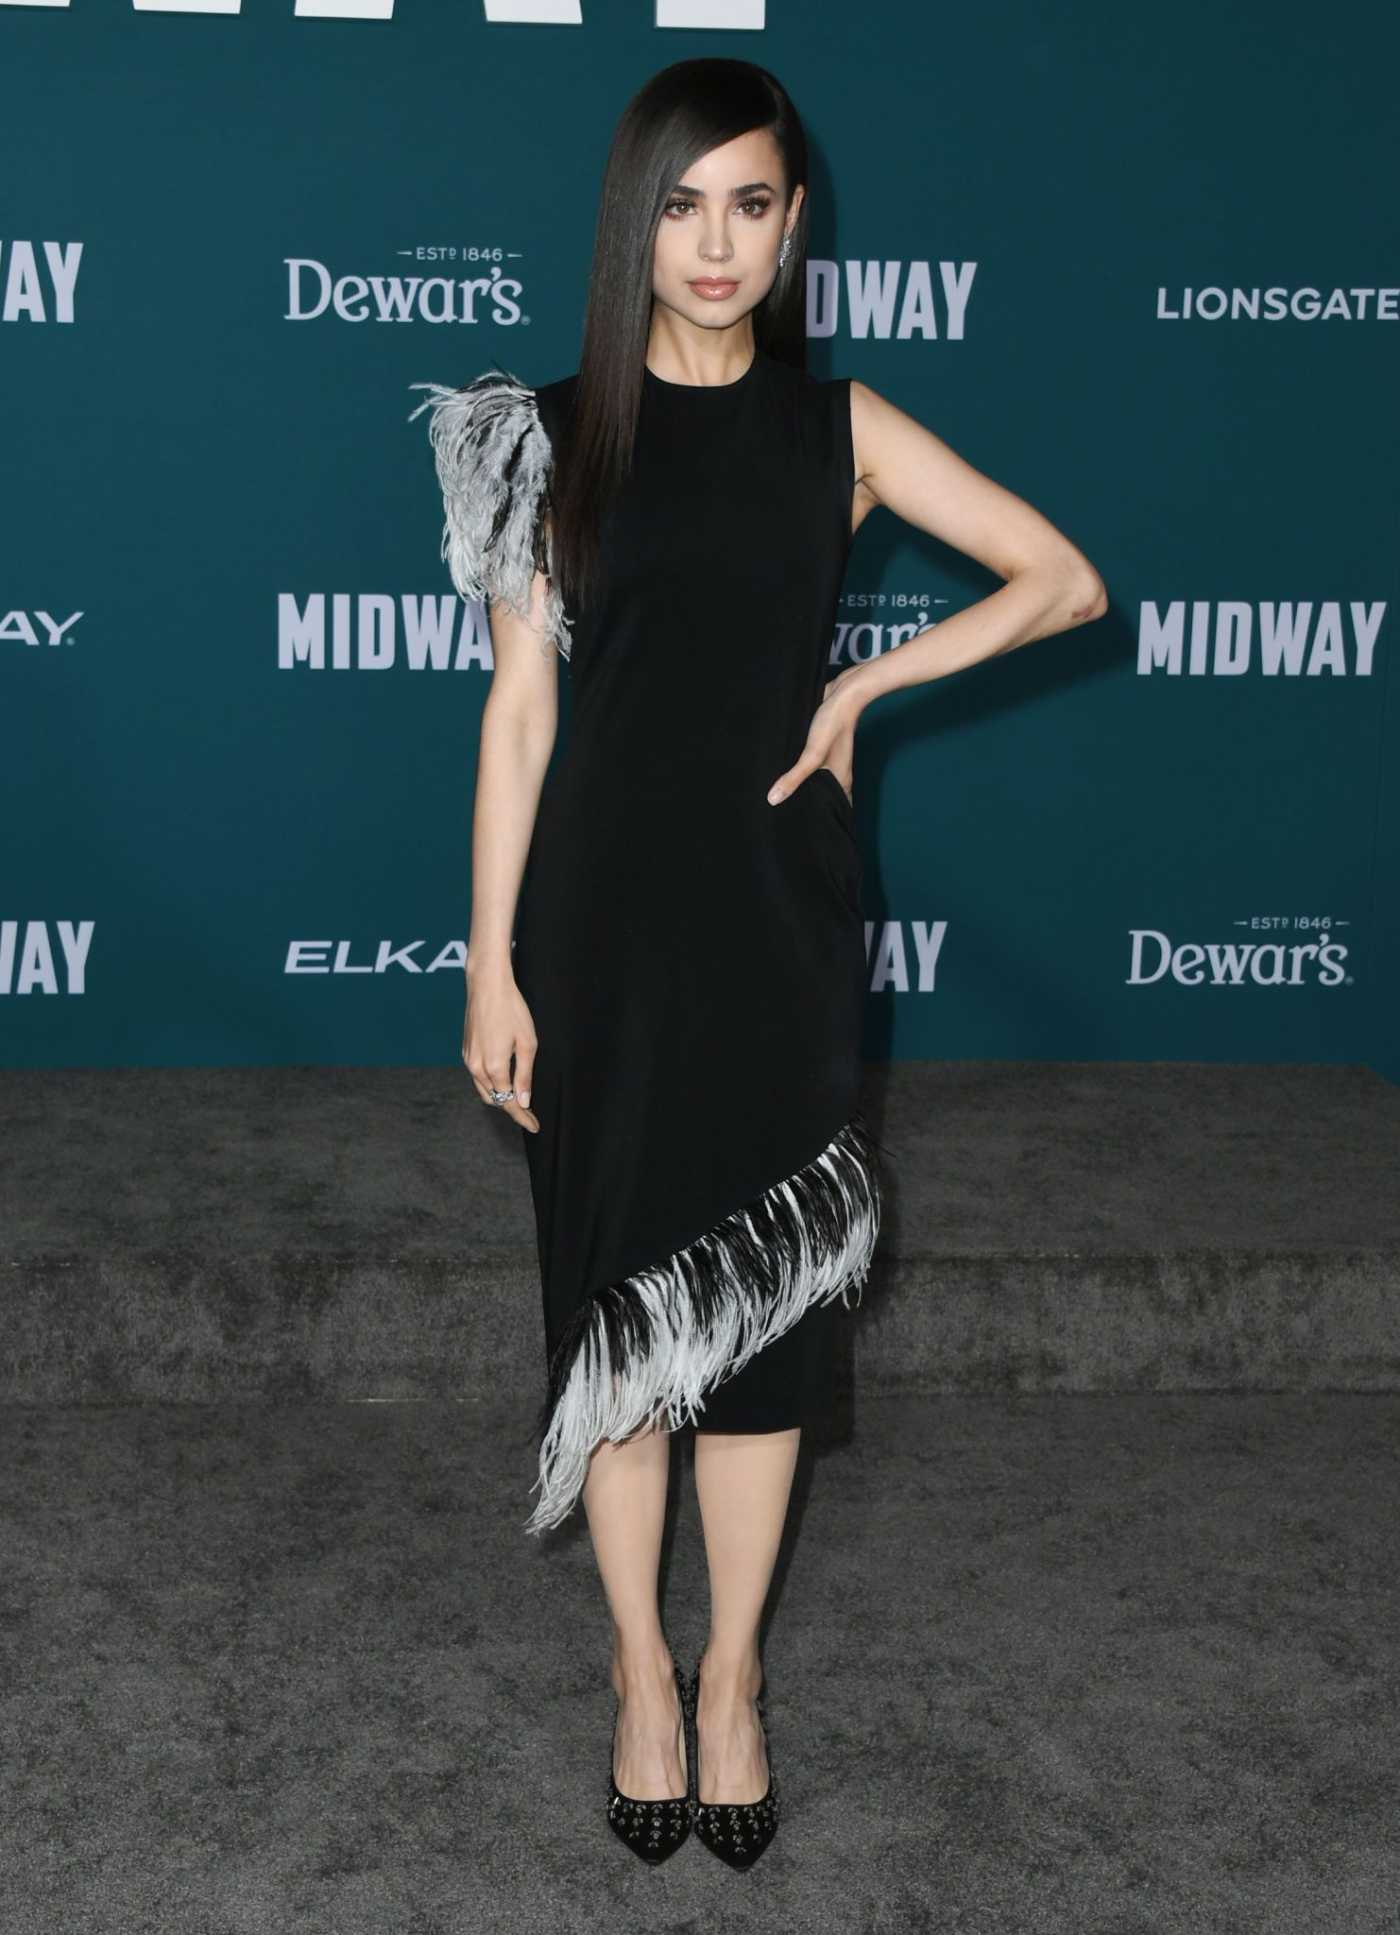 Sofia Carson Attends the Midway Premiere at Regency Village Theatre in Westwood 11/05/2019